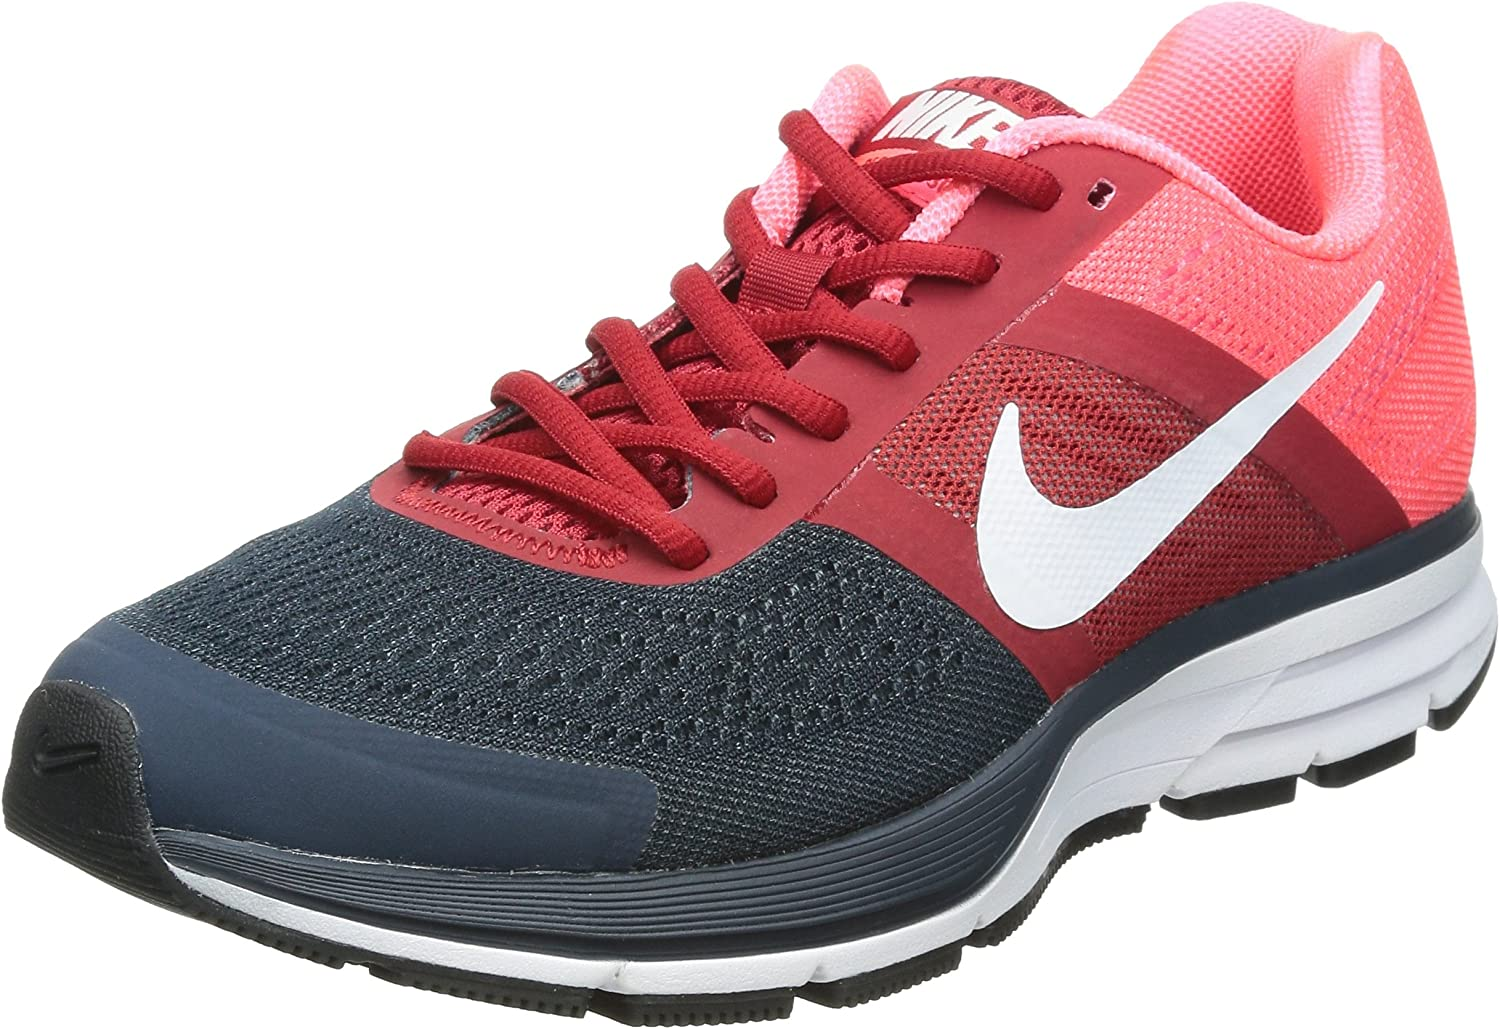 En otras palabras tenis Costoso  Amazon.co.jp: Nike (Nike) Running Shoes Air Pegasus + 30 599205 – 614 Pink  X Red X White X Black: Shoes & Bags